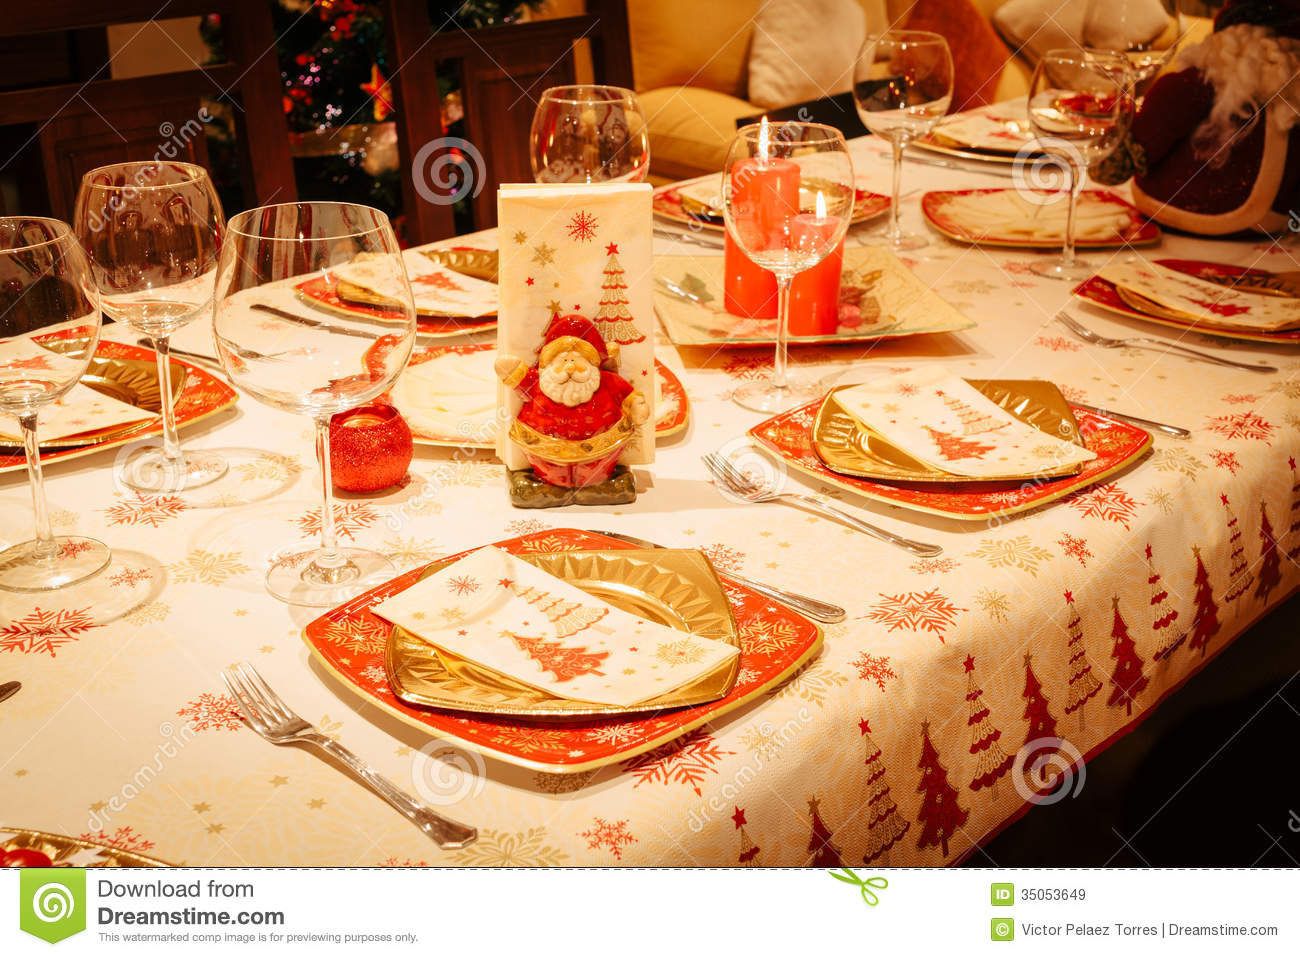 Christmas Dining Table With Christmas Tree In Background